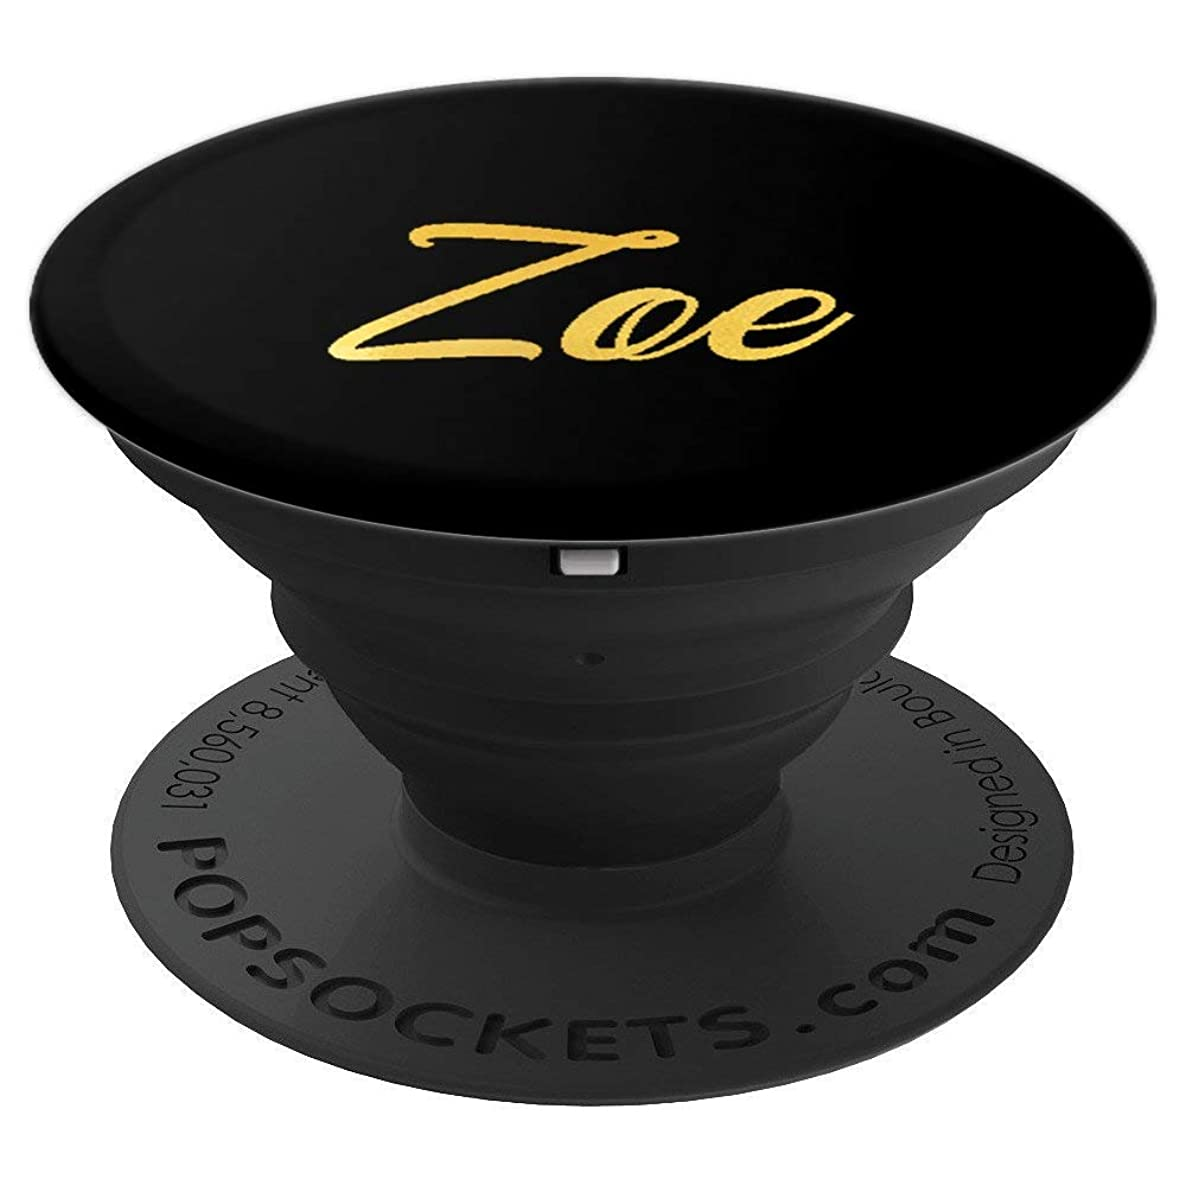 Zoe Name Personalized Happy Birthday Fancy Girl Mom Black - PopSockets Grip and Stand for Phones and Tablets jhpv2686699662